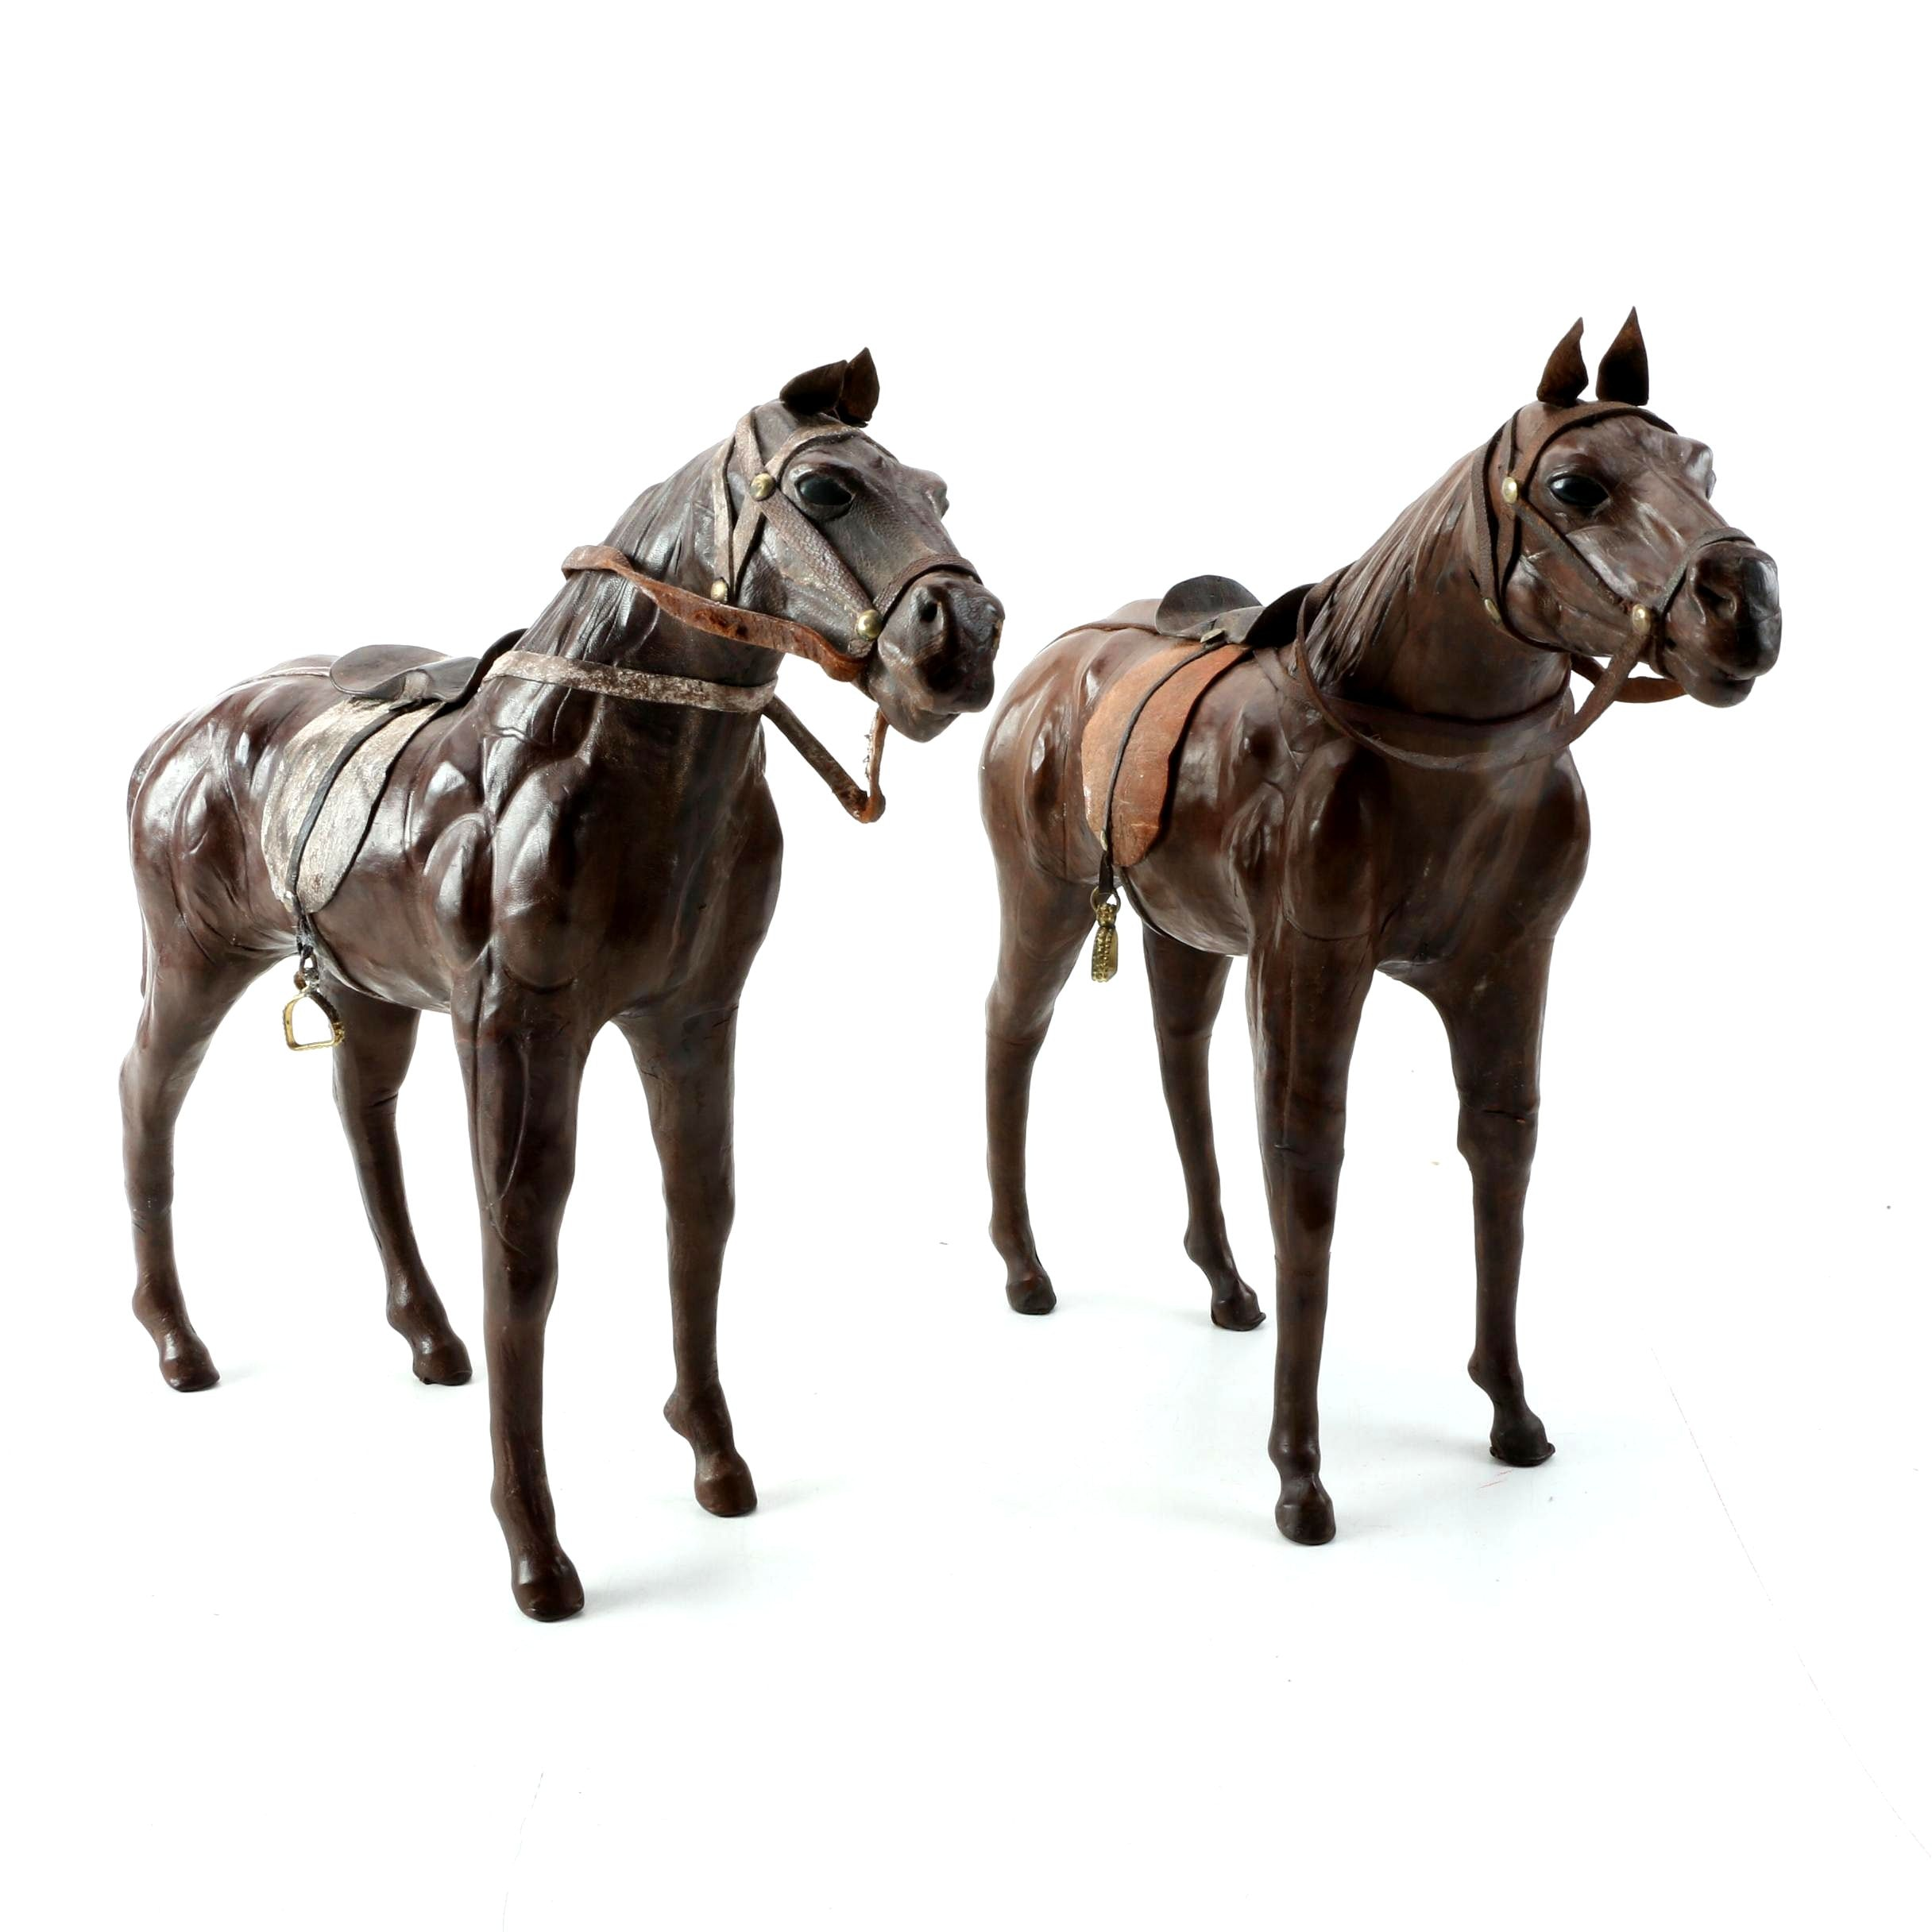 Leather Horse Sculptures